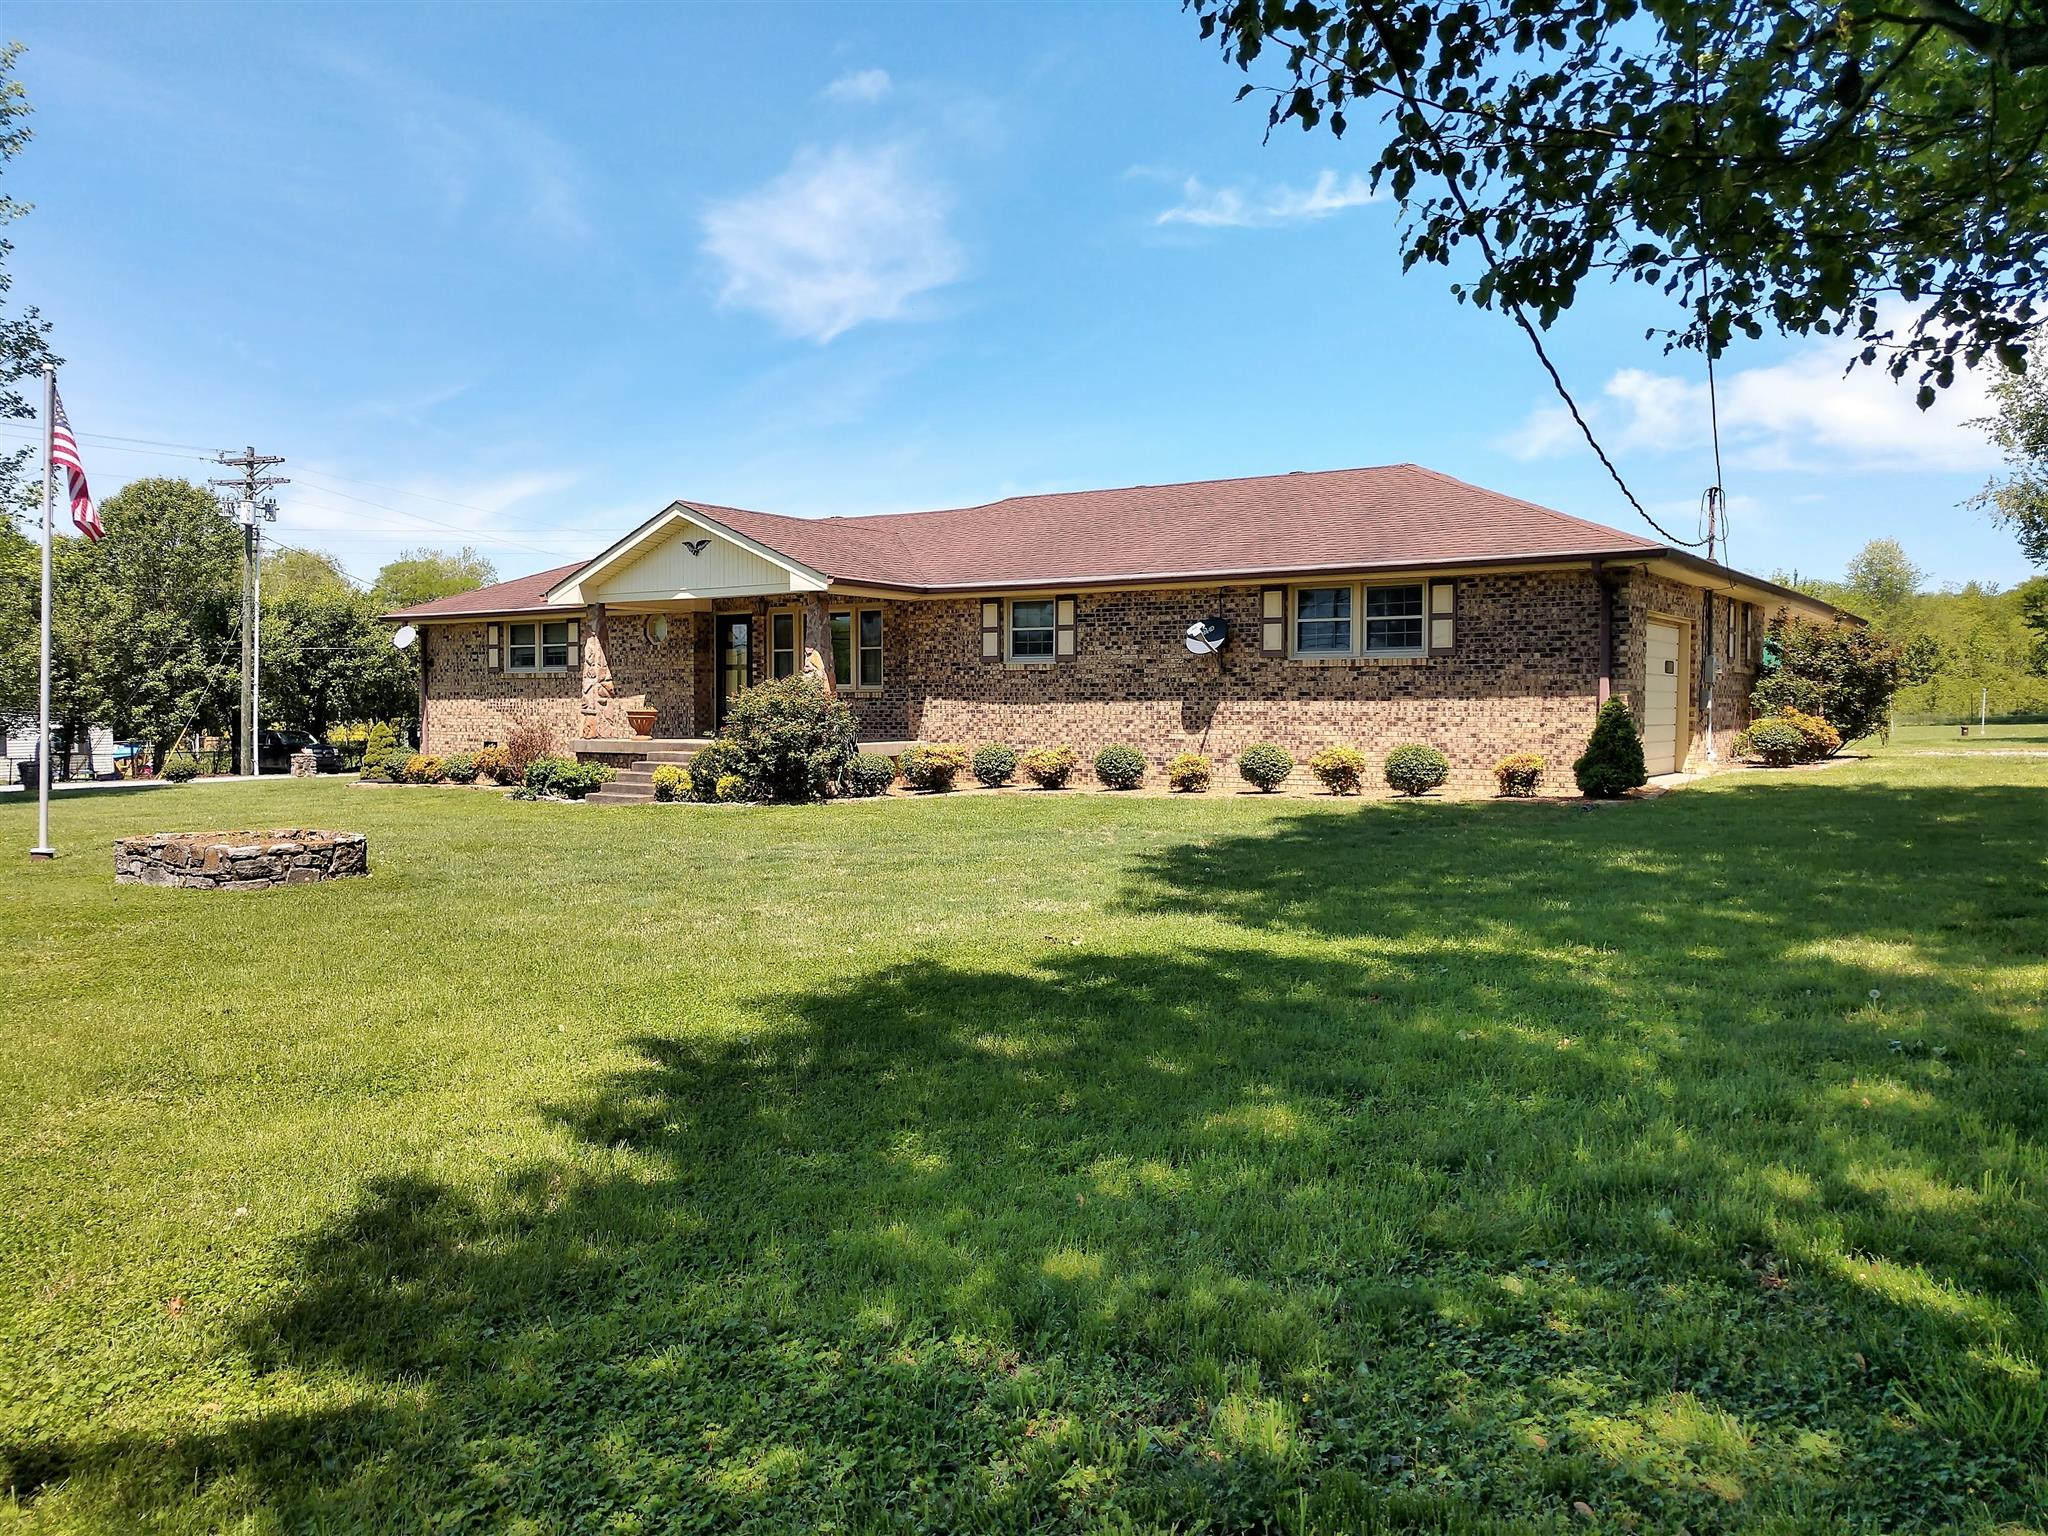 3839 Sparta Pike, Watertown, TN 37184 - Watertown, TN real estate listing